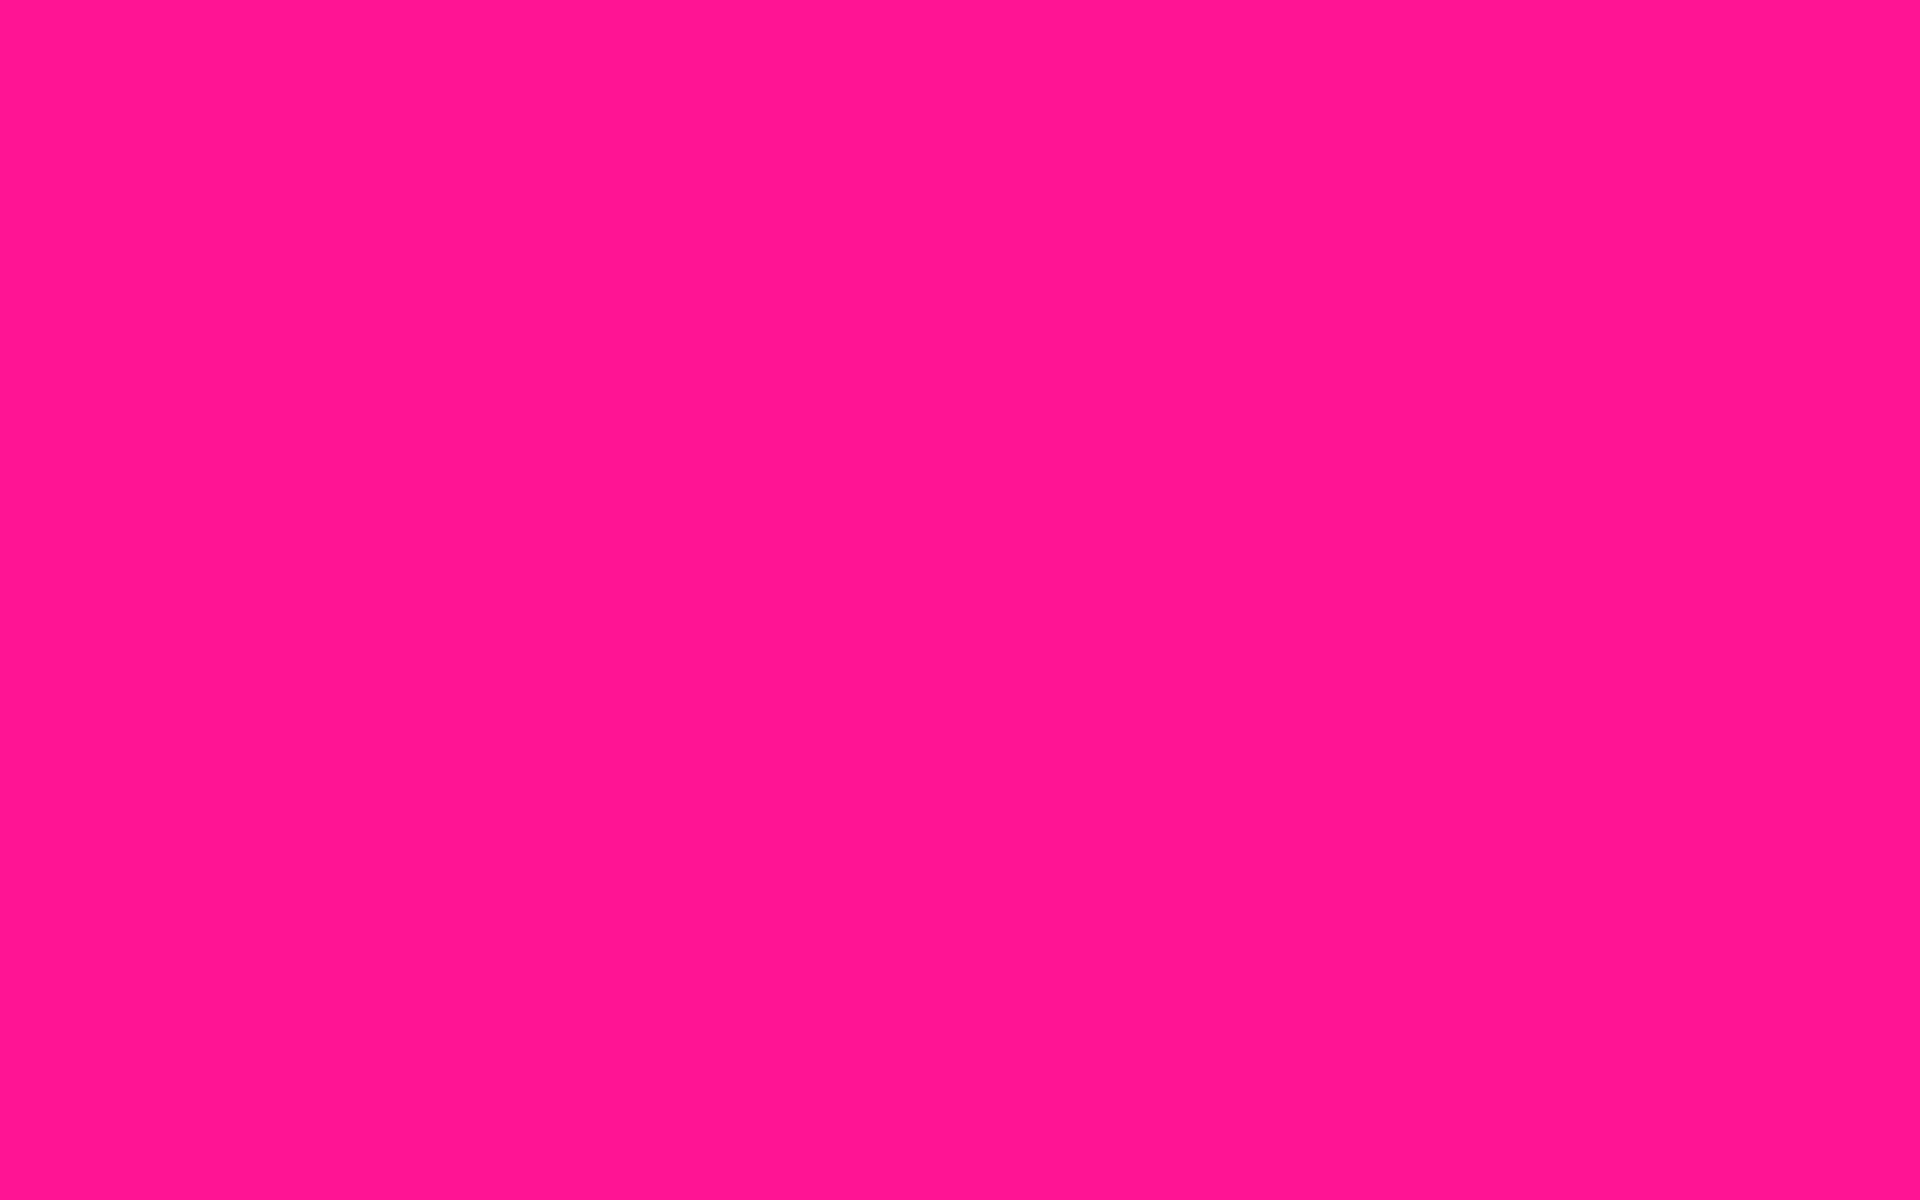 1920x1200 Fluorescent Pink Solid Color Background